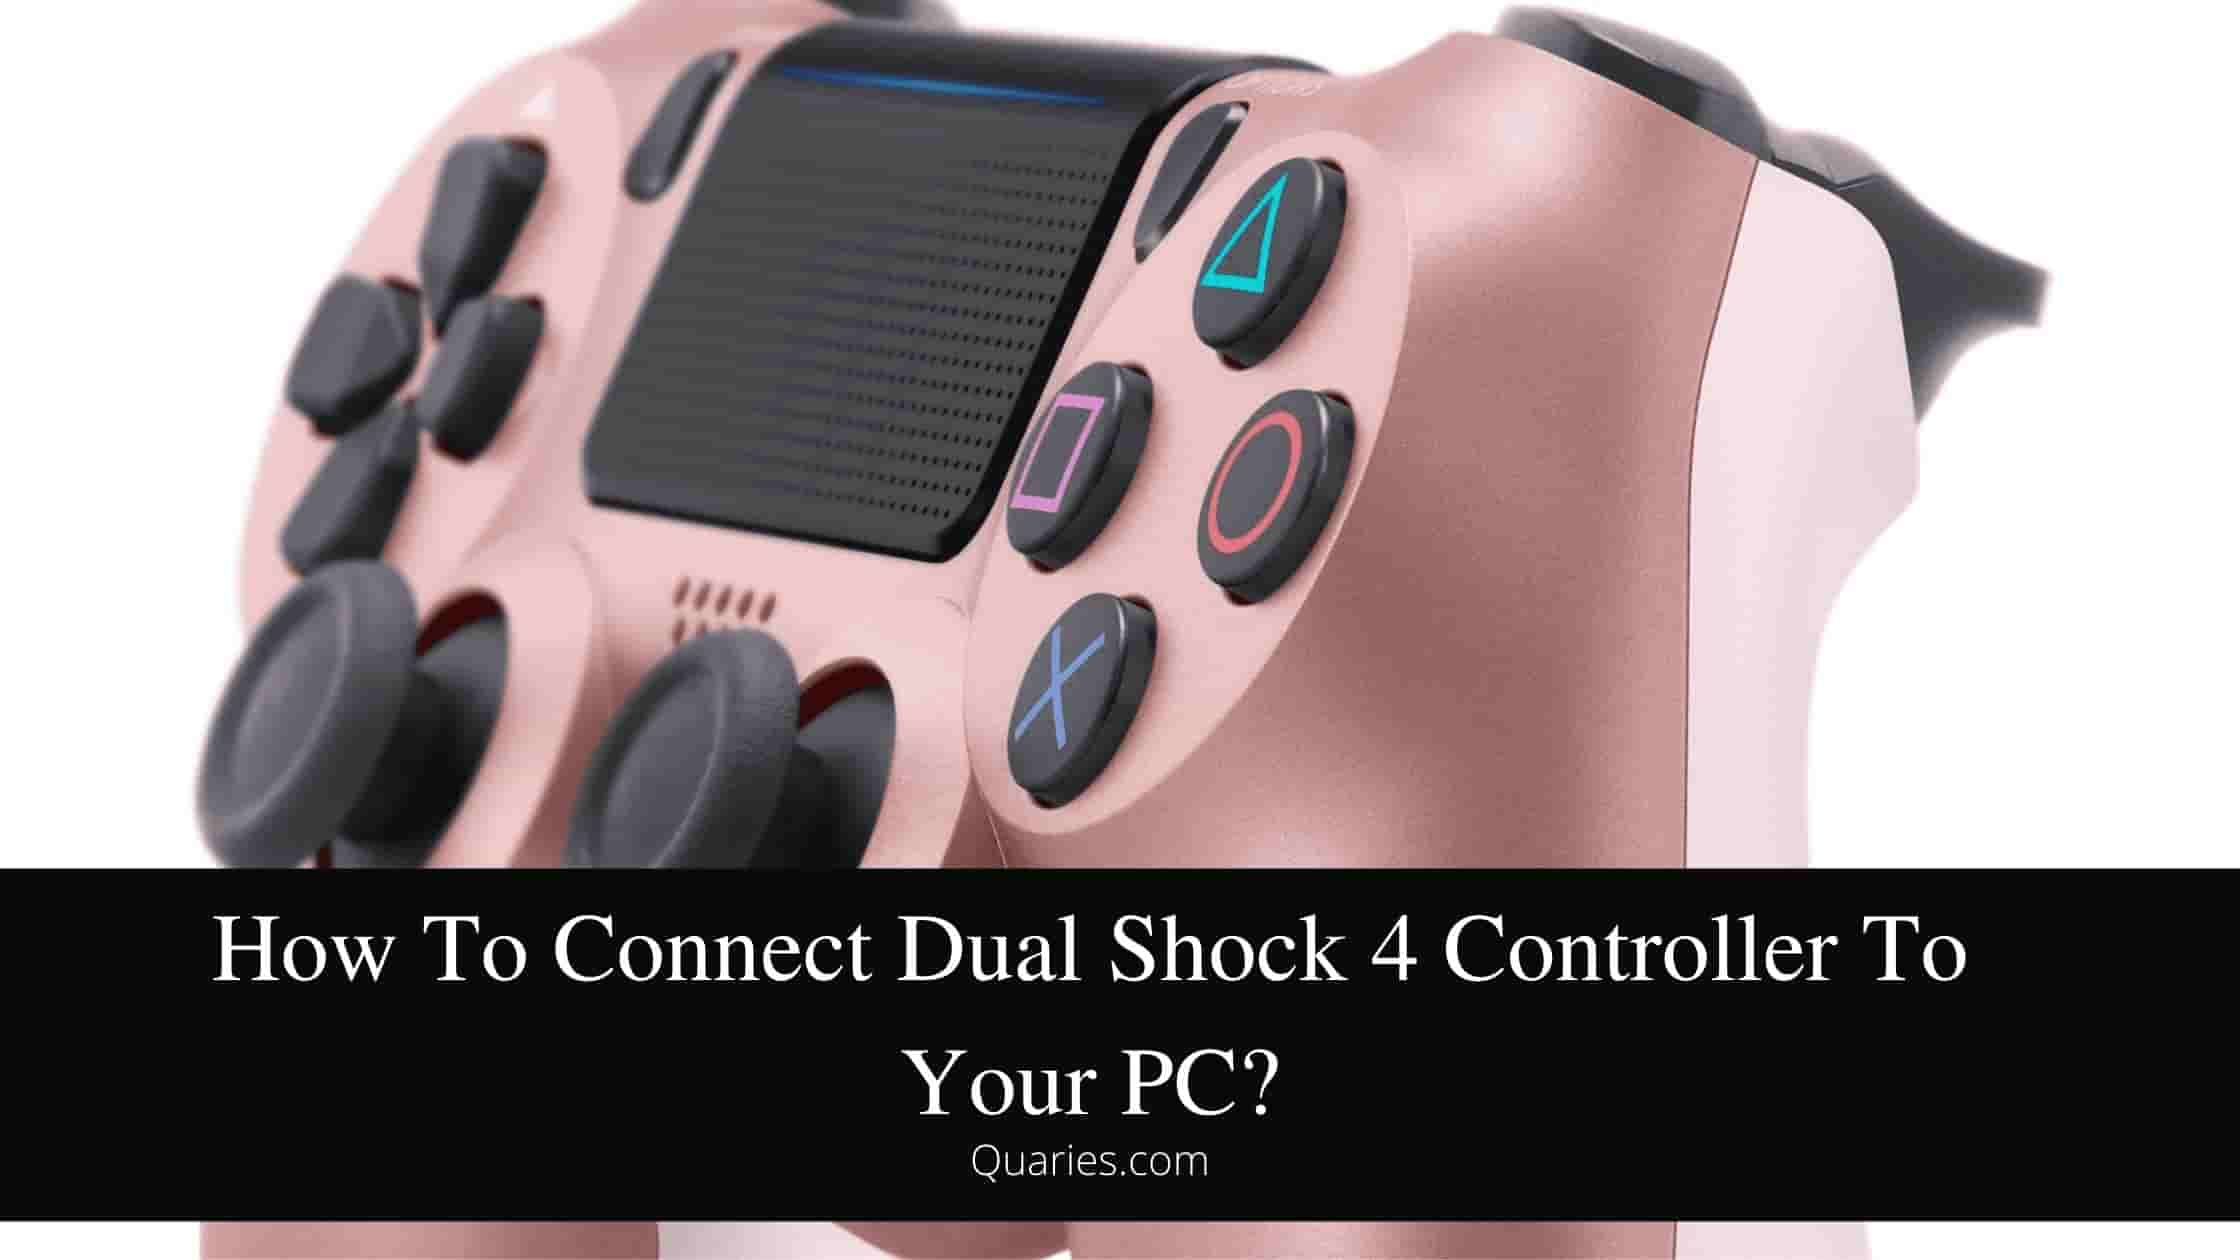 How To Connect Dual Shock 4 Controller To Your PC?